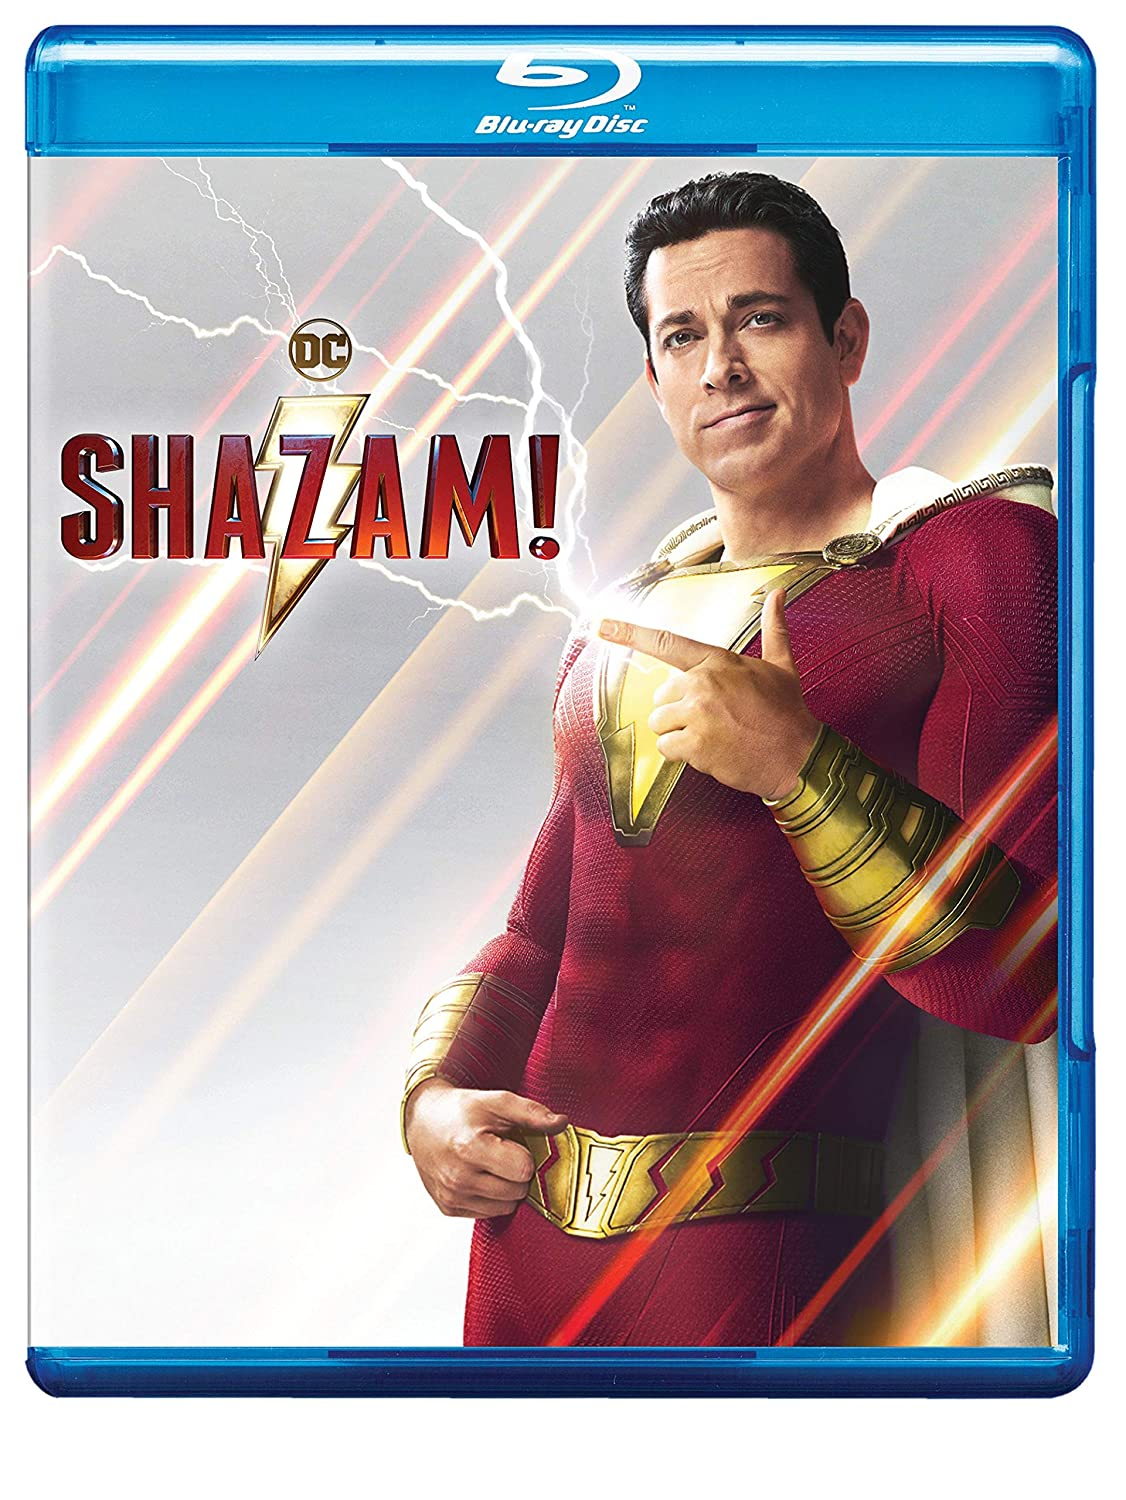 Amazon.com: Shazam! (Blu-ray + DVD + Digital Combo Pack) (BD ...